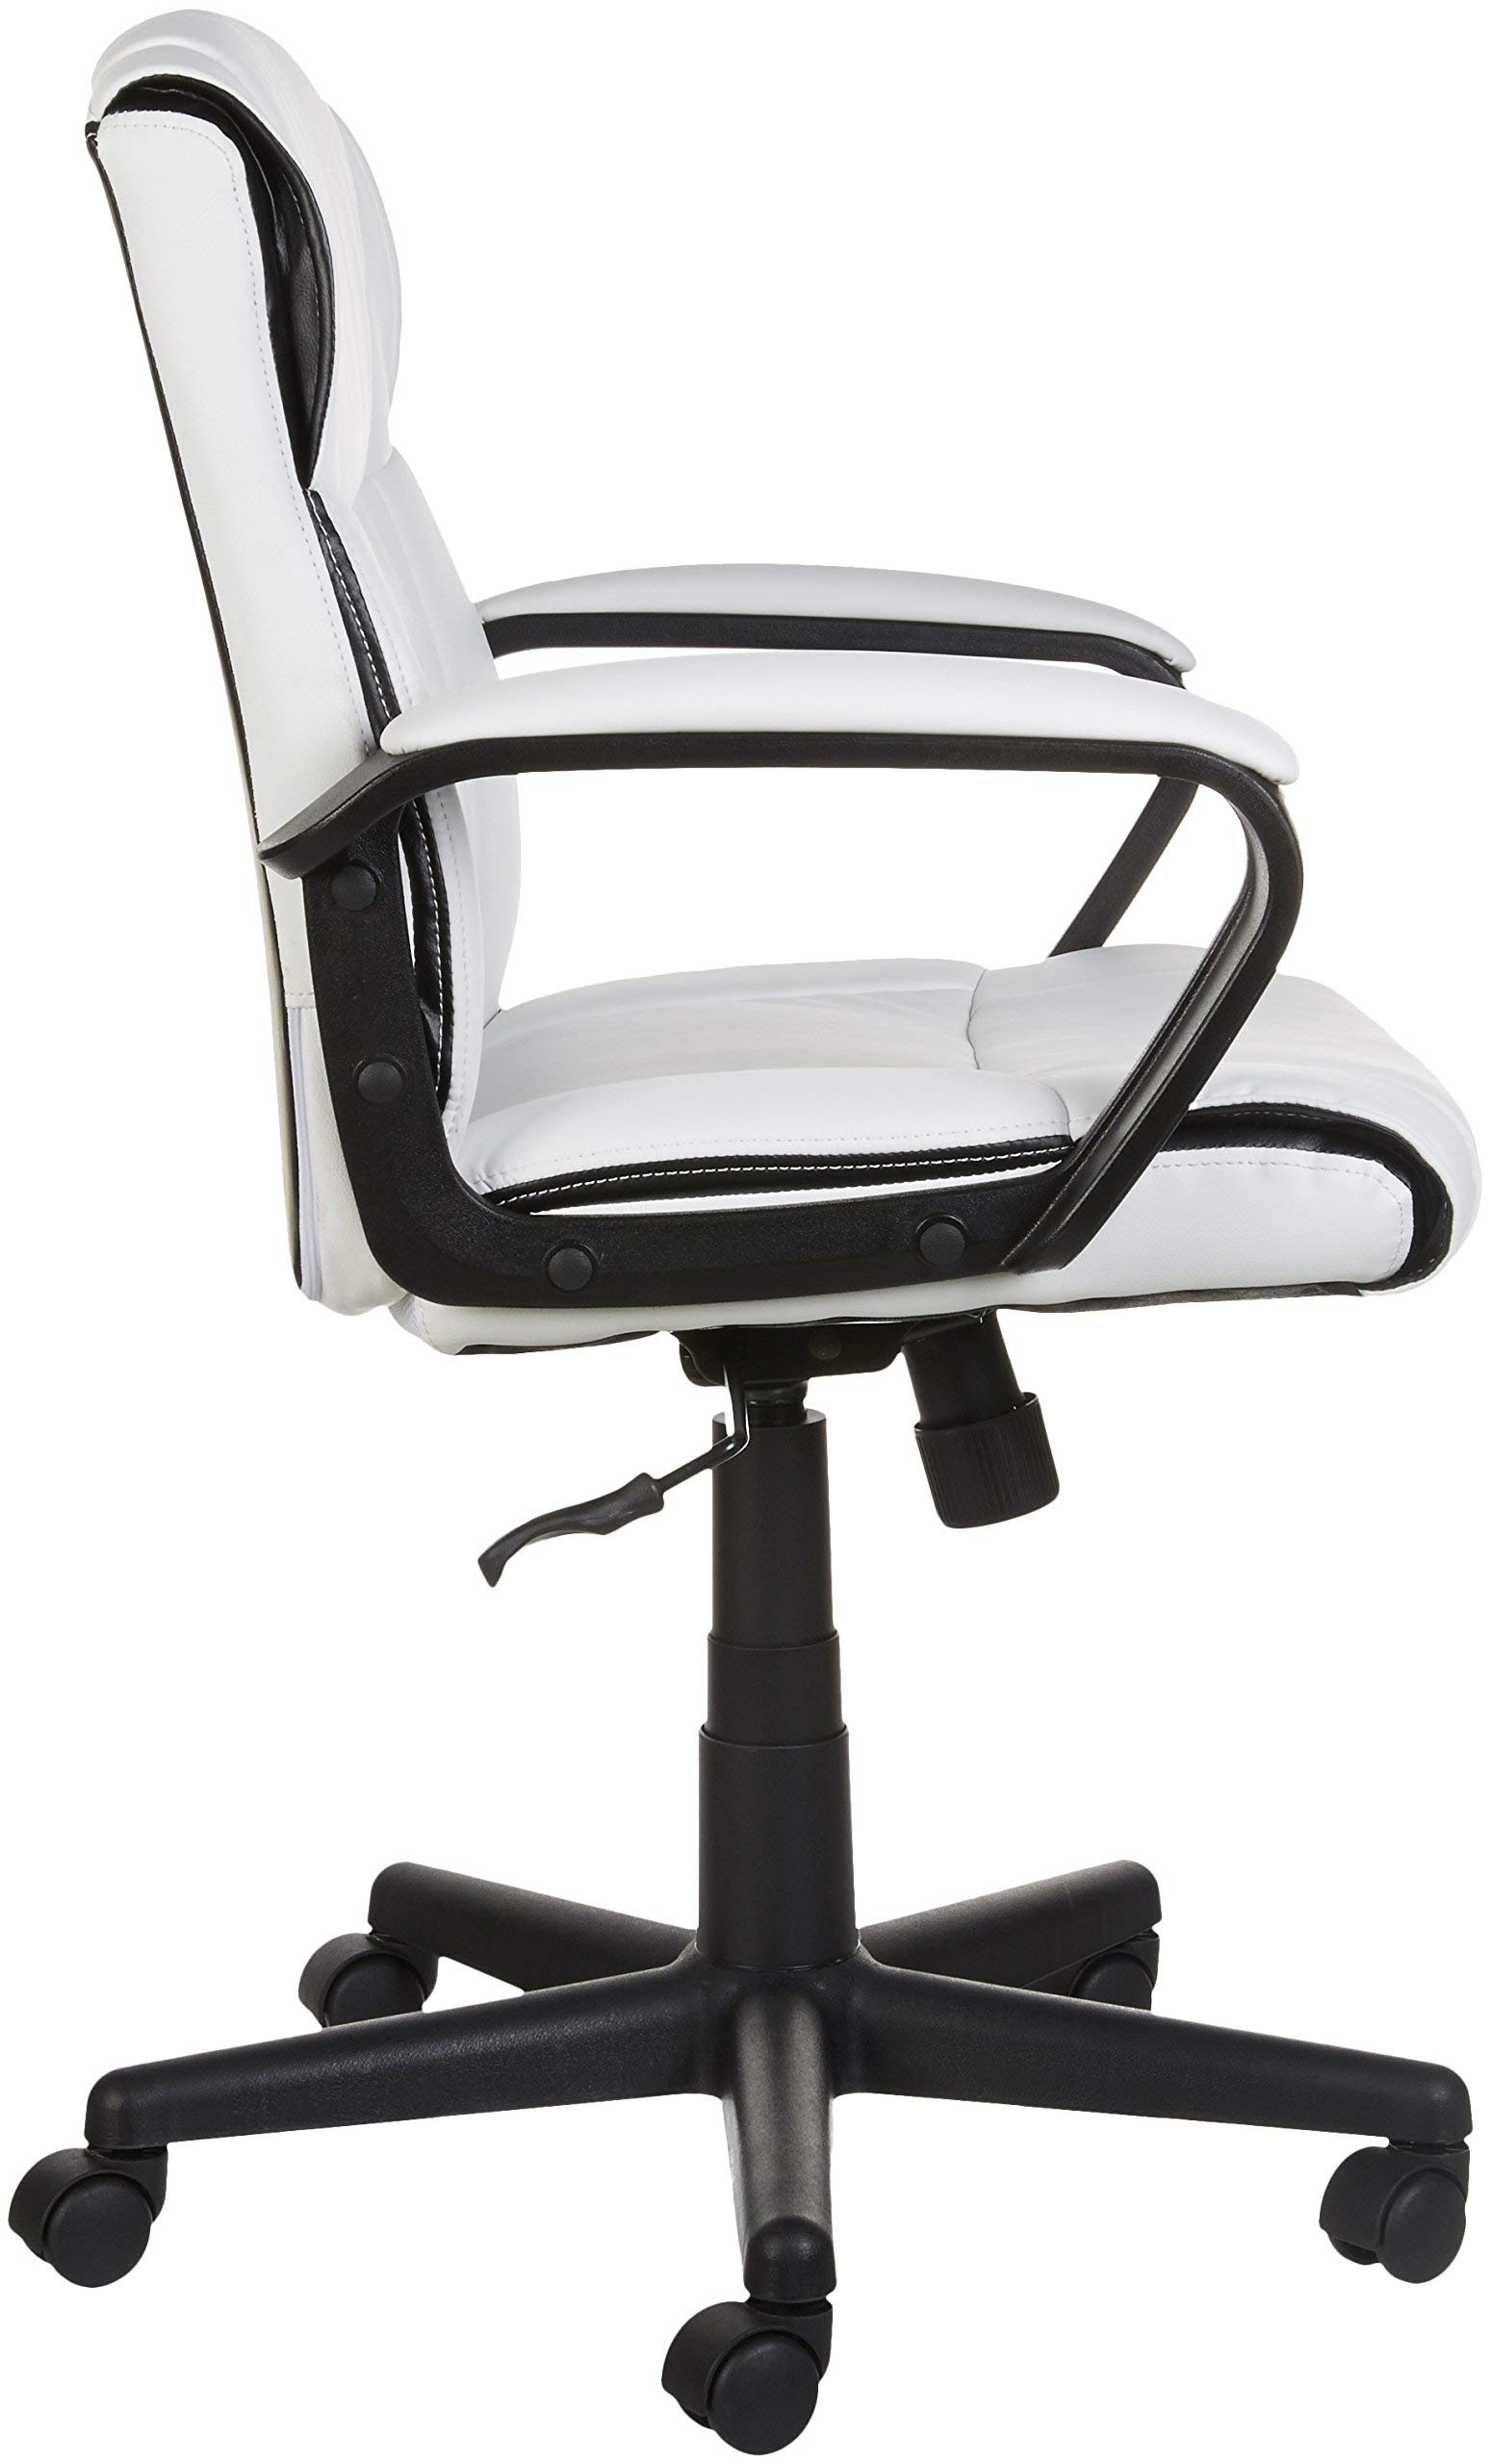 AmazonBasics Classic Leather-Padded Mid-Back Office Computer Desk Chair with Armrest - White by AmazonBasics (Image #5)